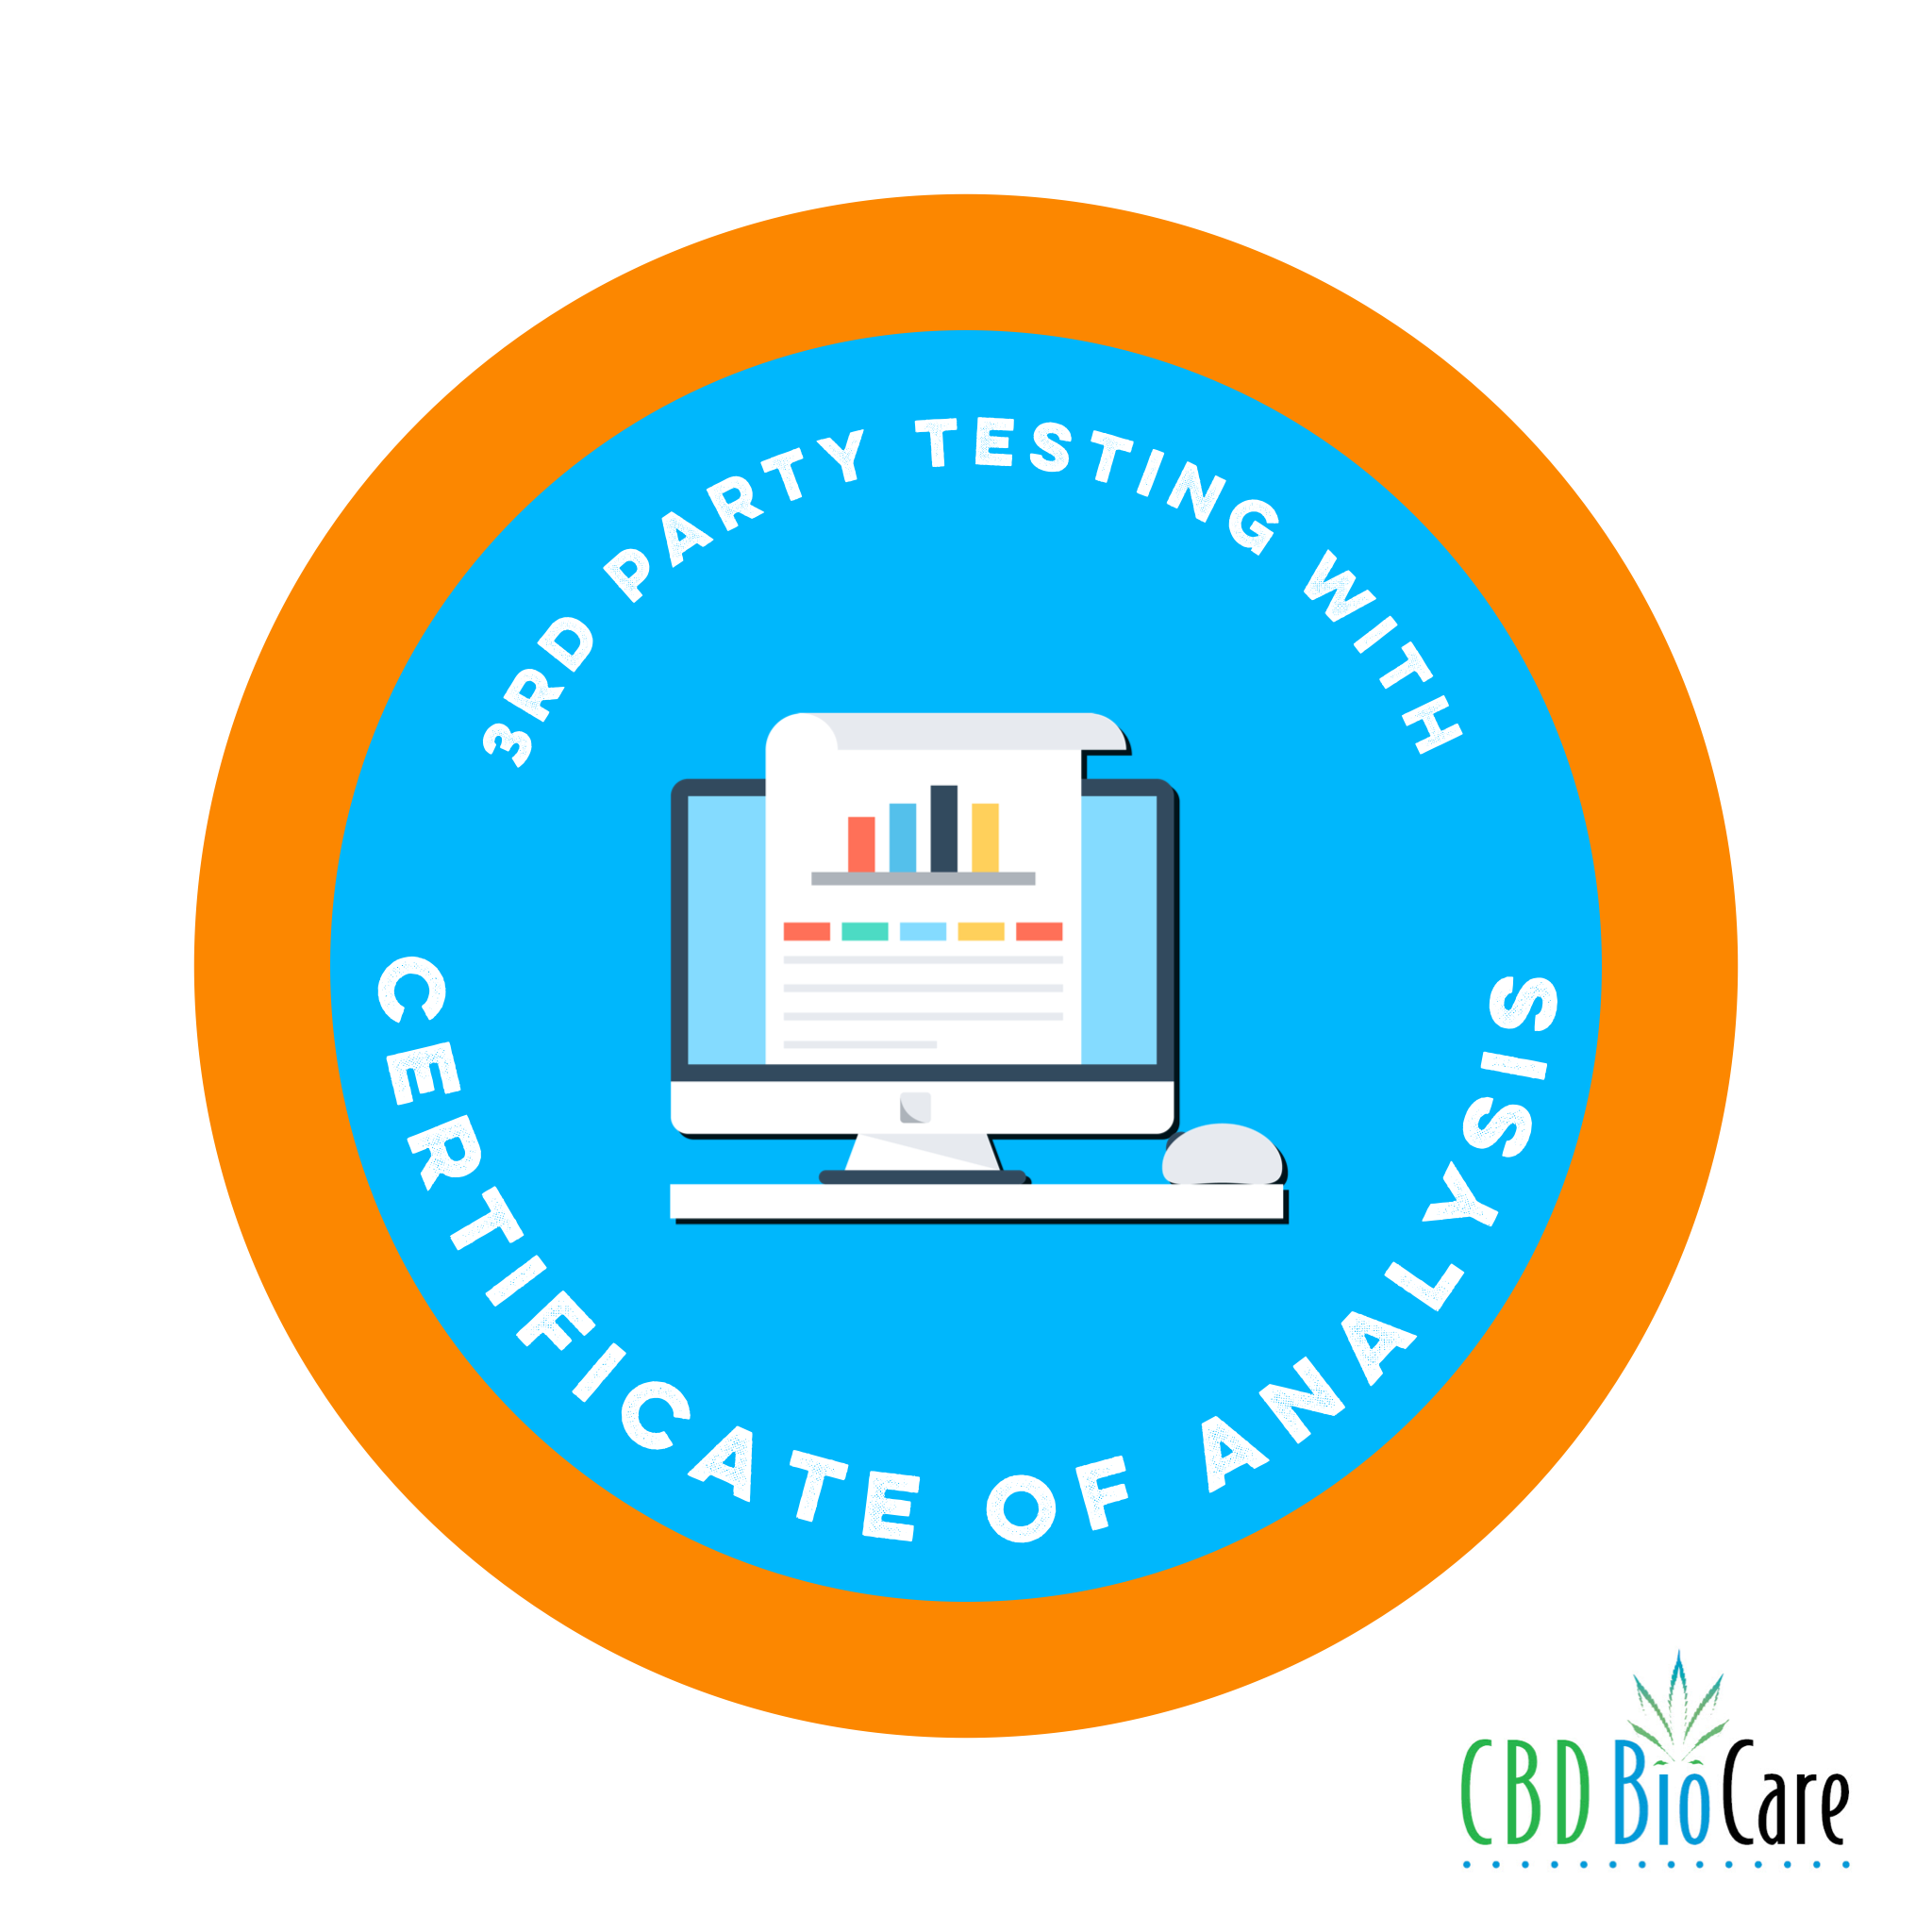 cbd biocare 3rd party tested